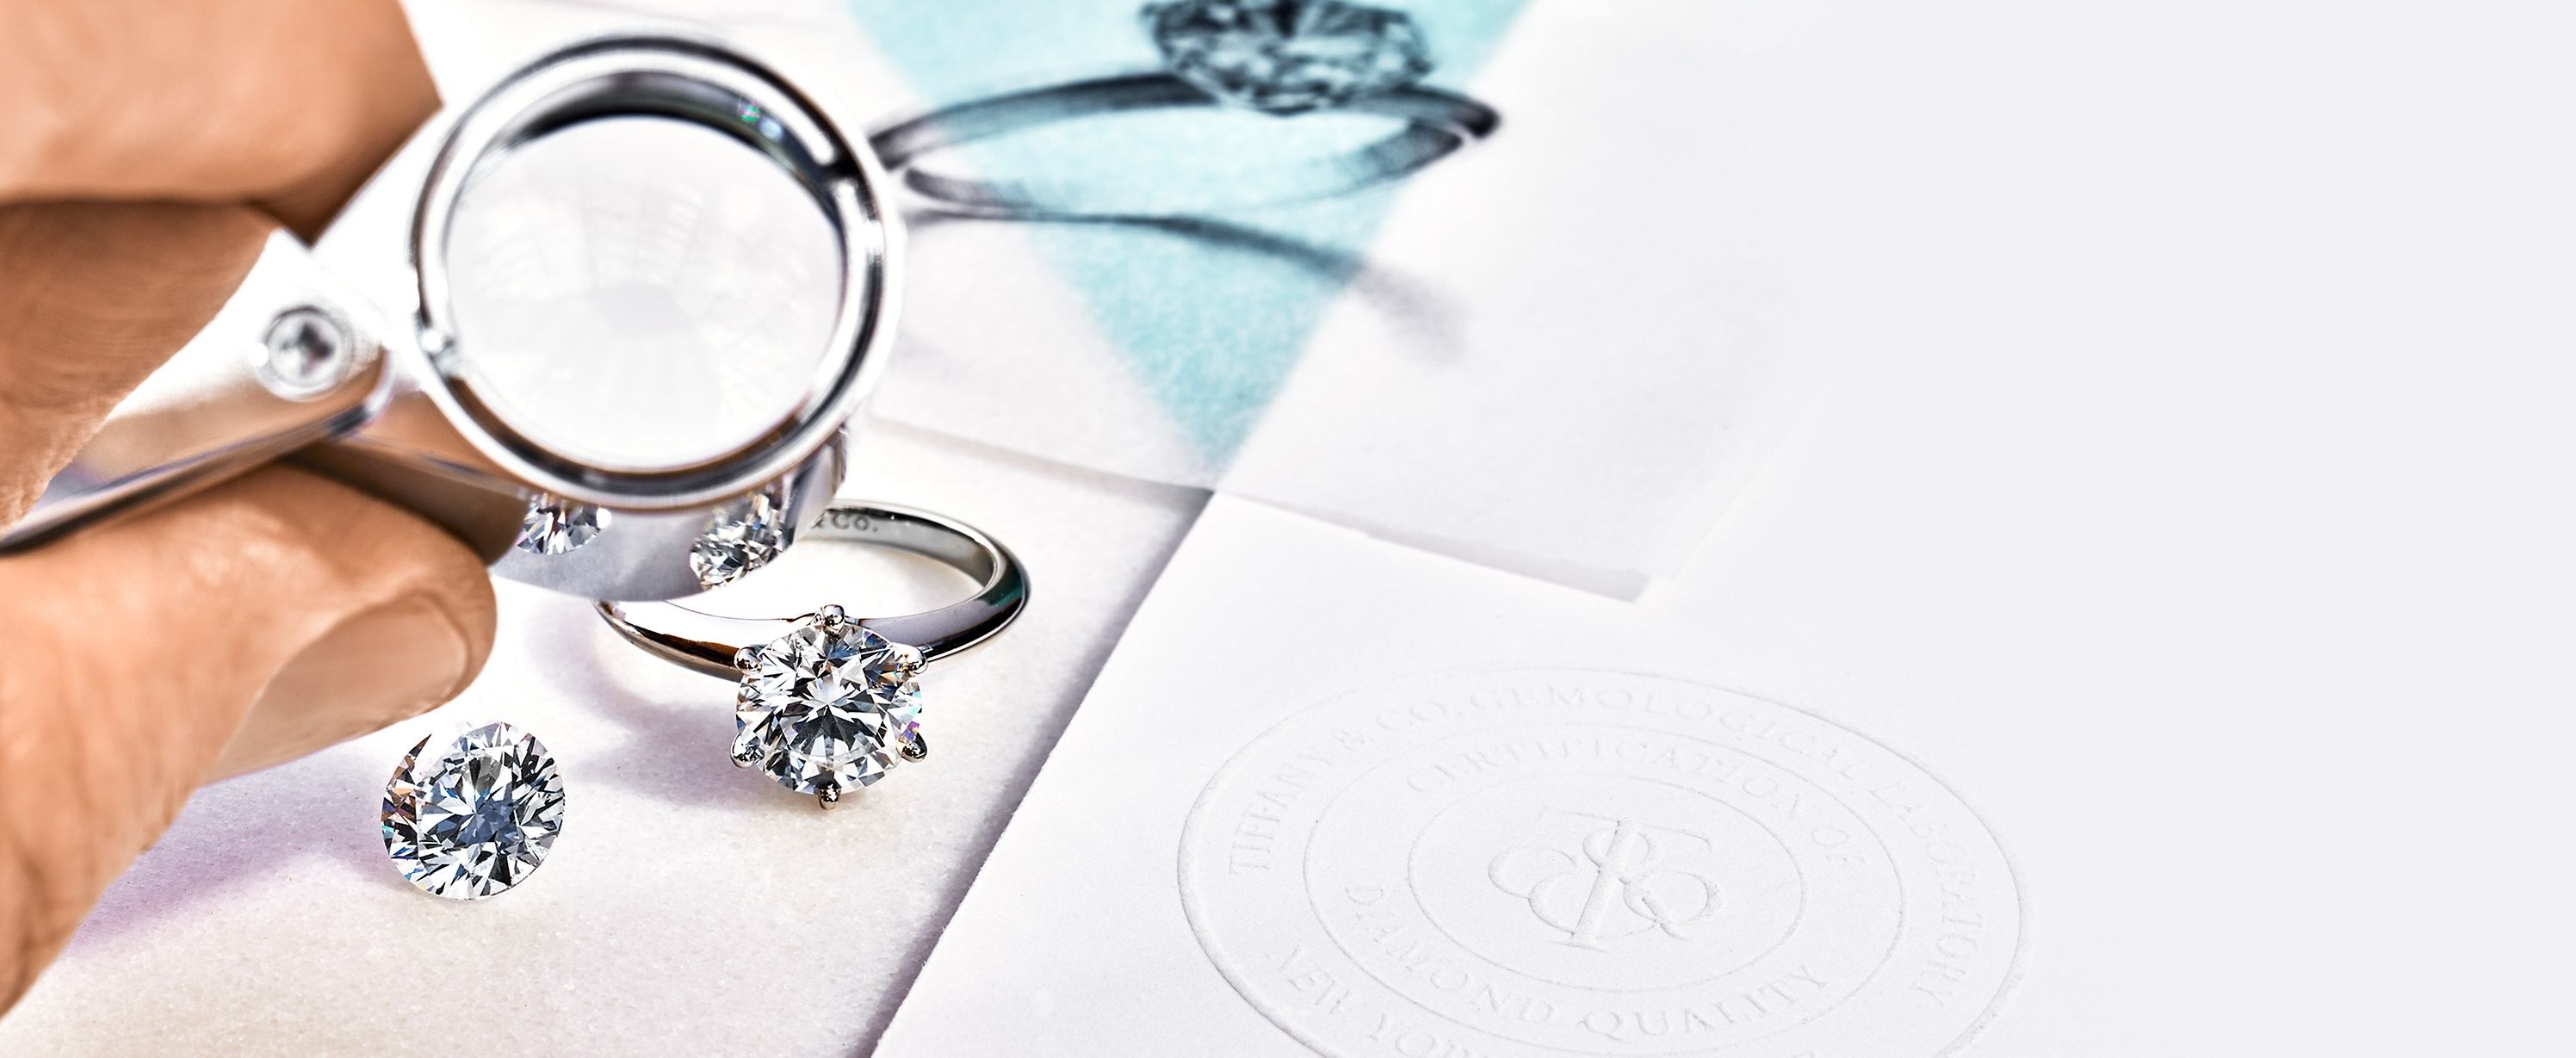 Engagement Ring Service at Tiffany & Co.